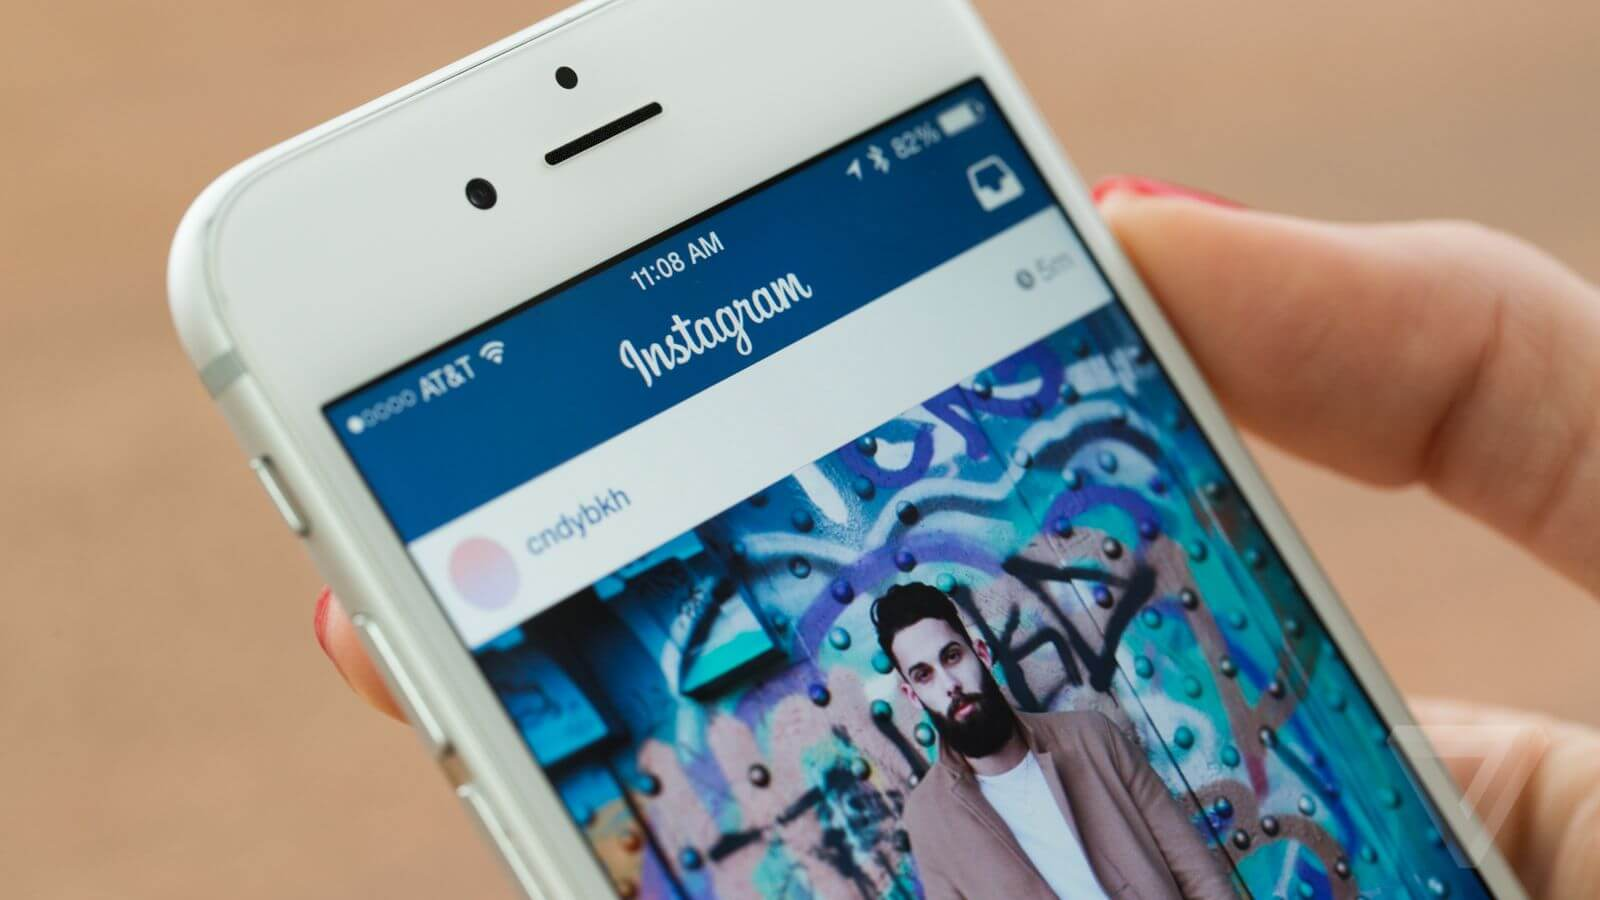 Fast likes Instagram? Impossible!